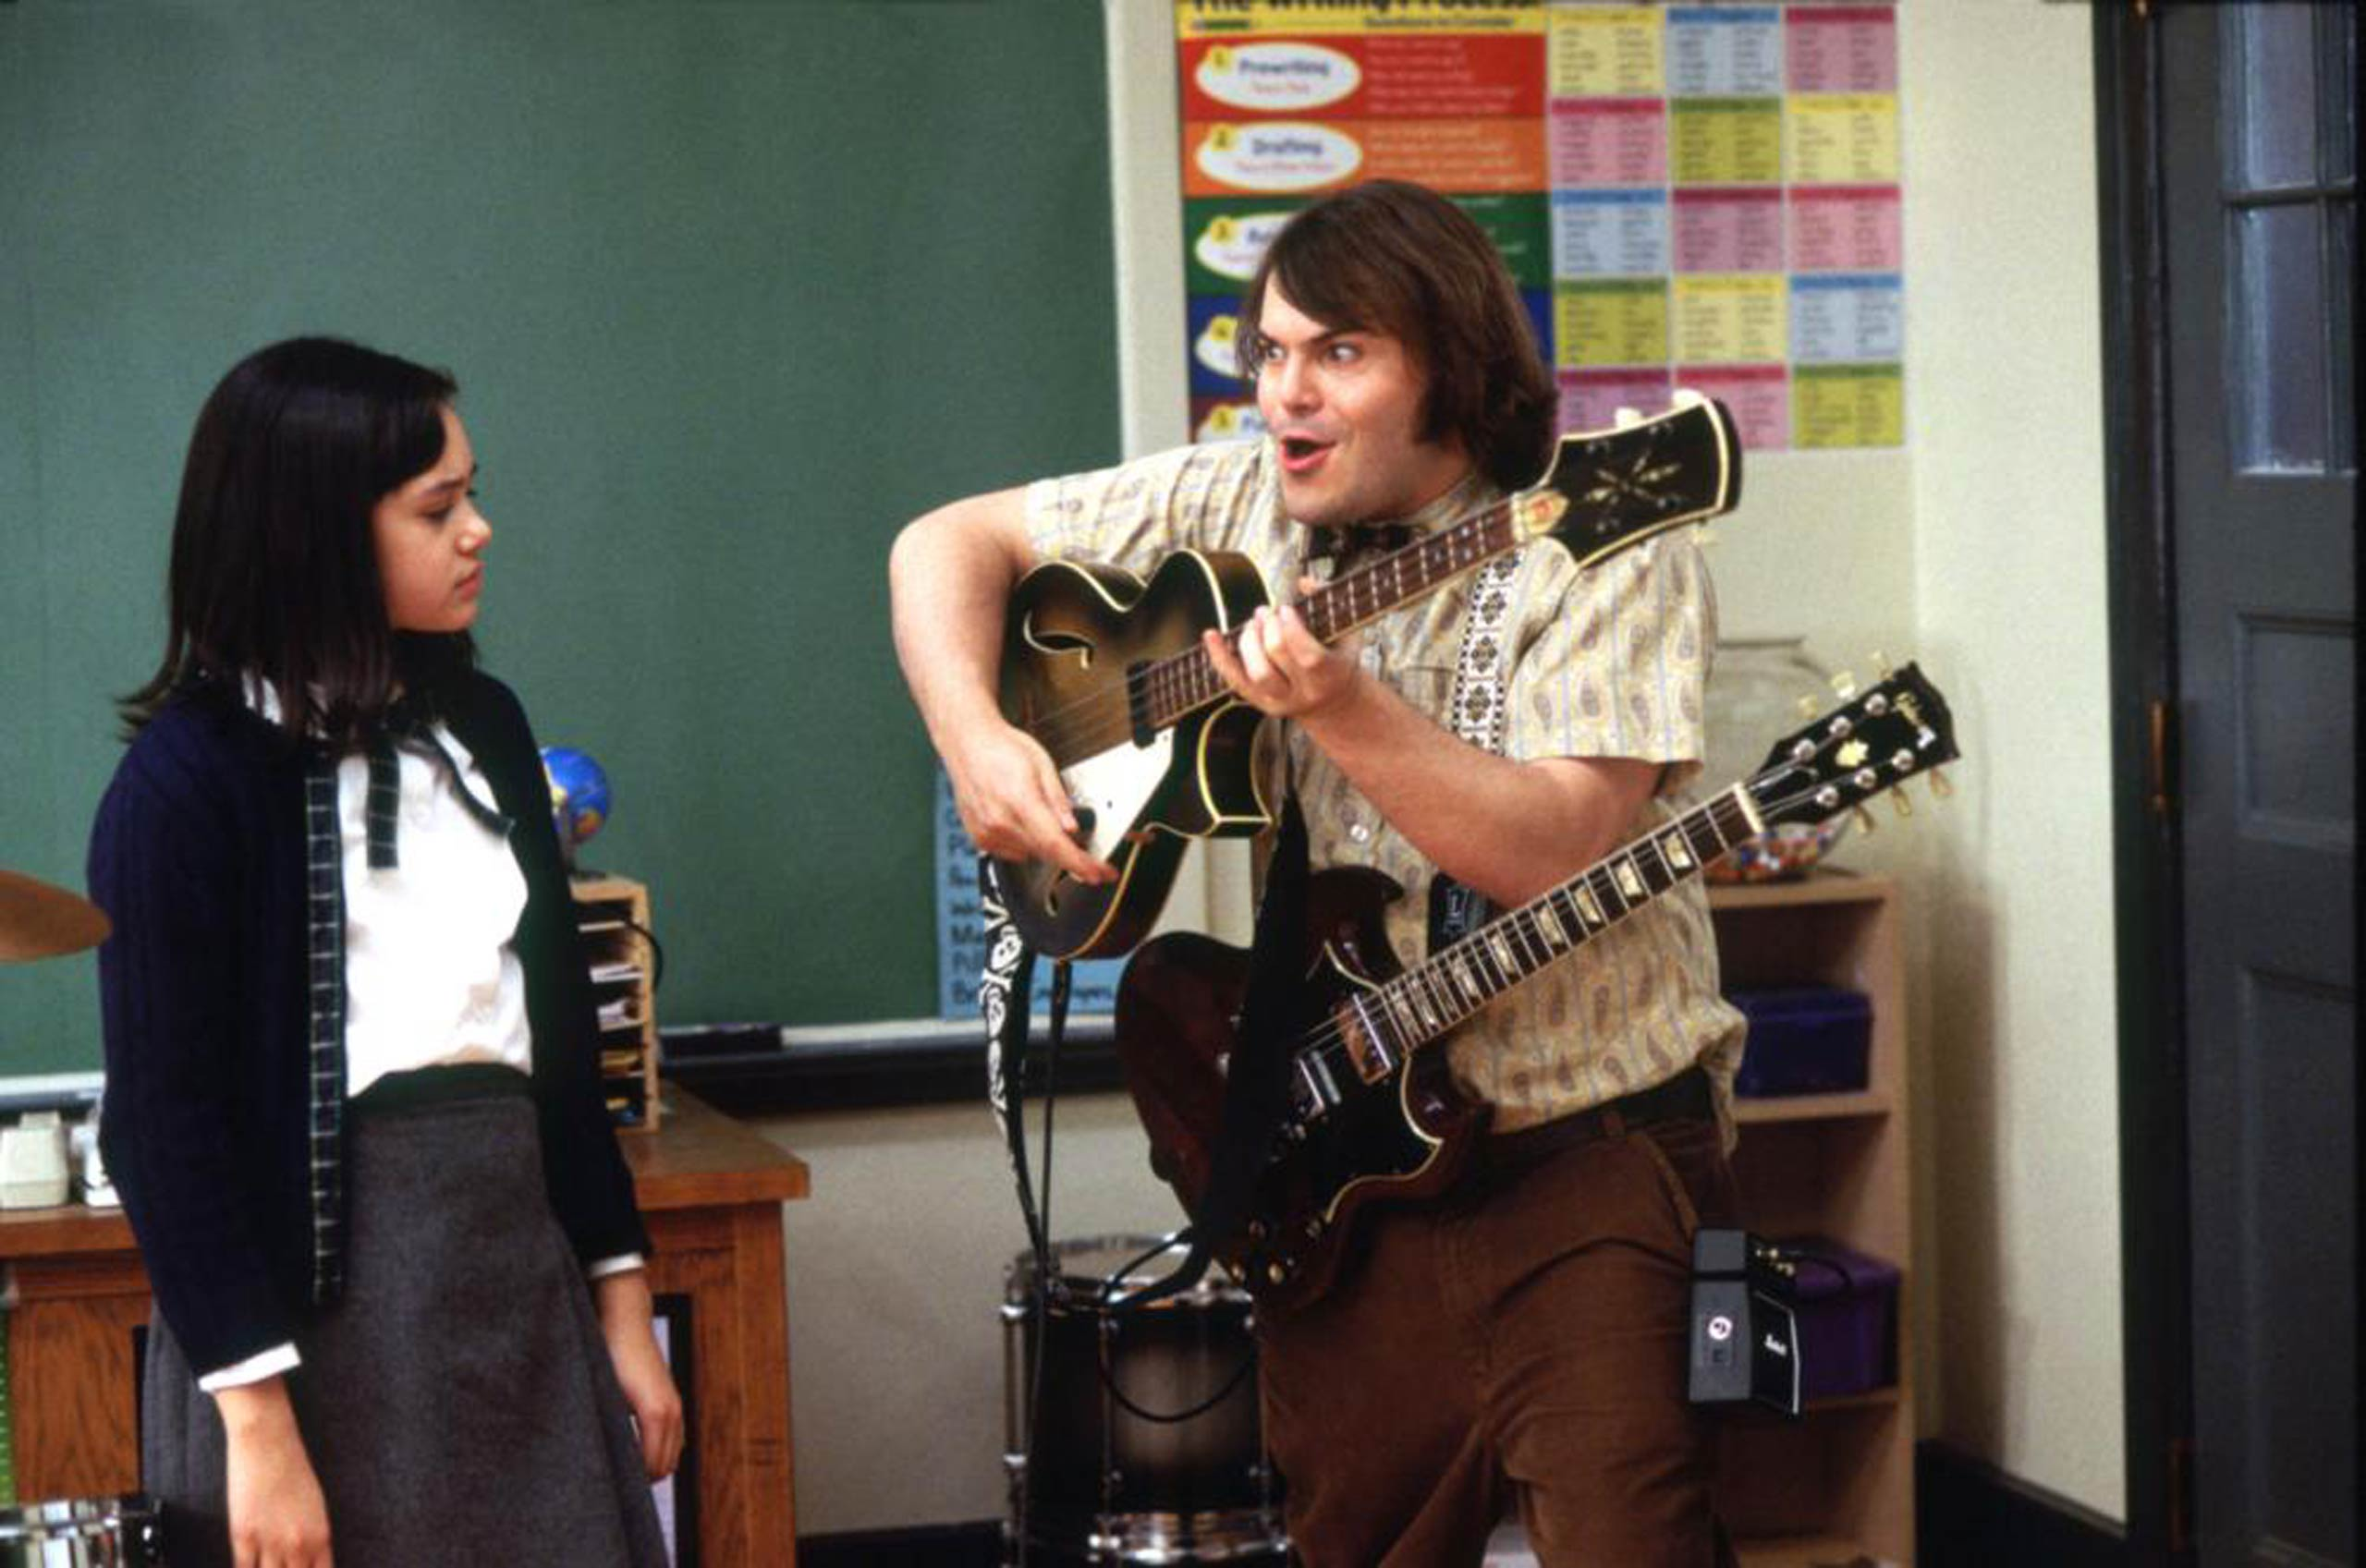 School of Rock (Nickelodeon)                                                              Set to air on Nickelodeon, School of Rock will follow a down-on-his-luck musician who pretends to be a substitute teacher at a prep school.